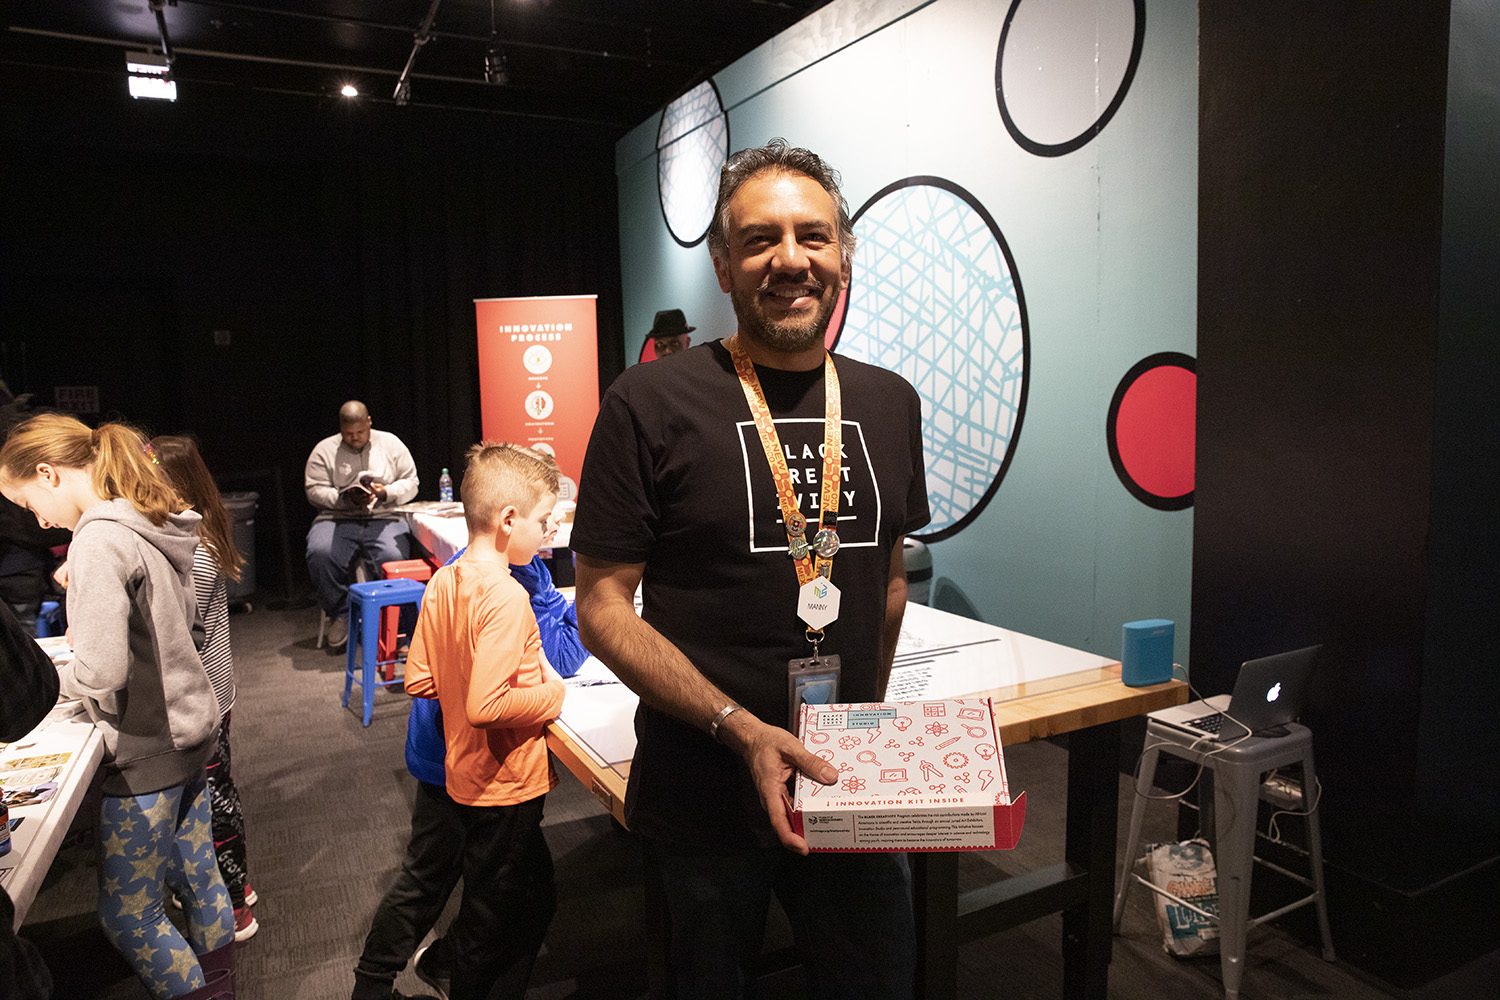 Manny Juarez, director of science and integrated strategies, holds one of the Innovation Studio's kits for children. (Arionne Nettles/WBEZ)